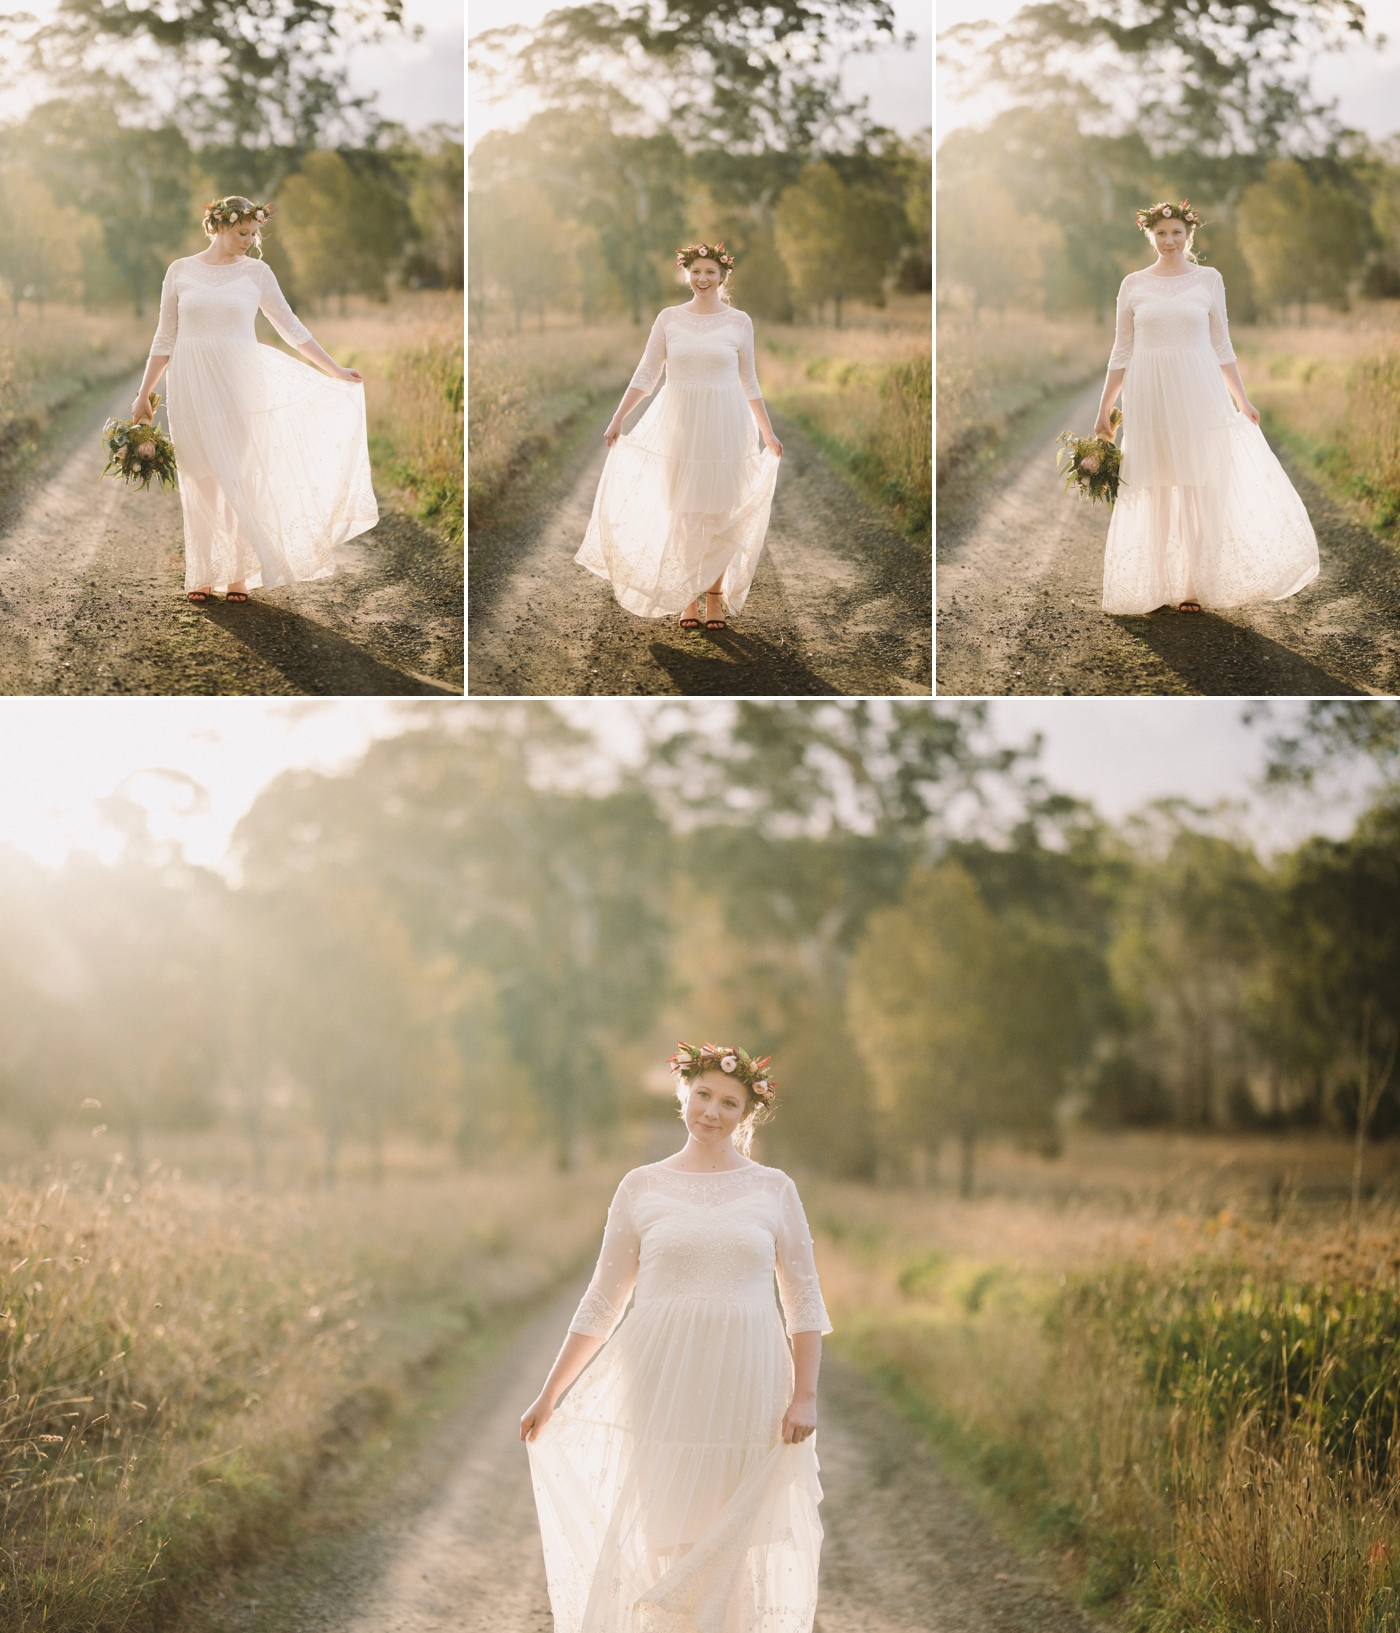 Jo & Aaron - Natural Wedding Photography in Adelaide - Beautiful, modern wedding photographer - Al Ru Farm Wedding Photography - Katherine Schultz_0032.jpg